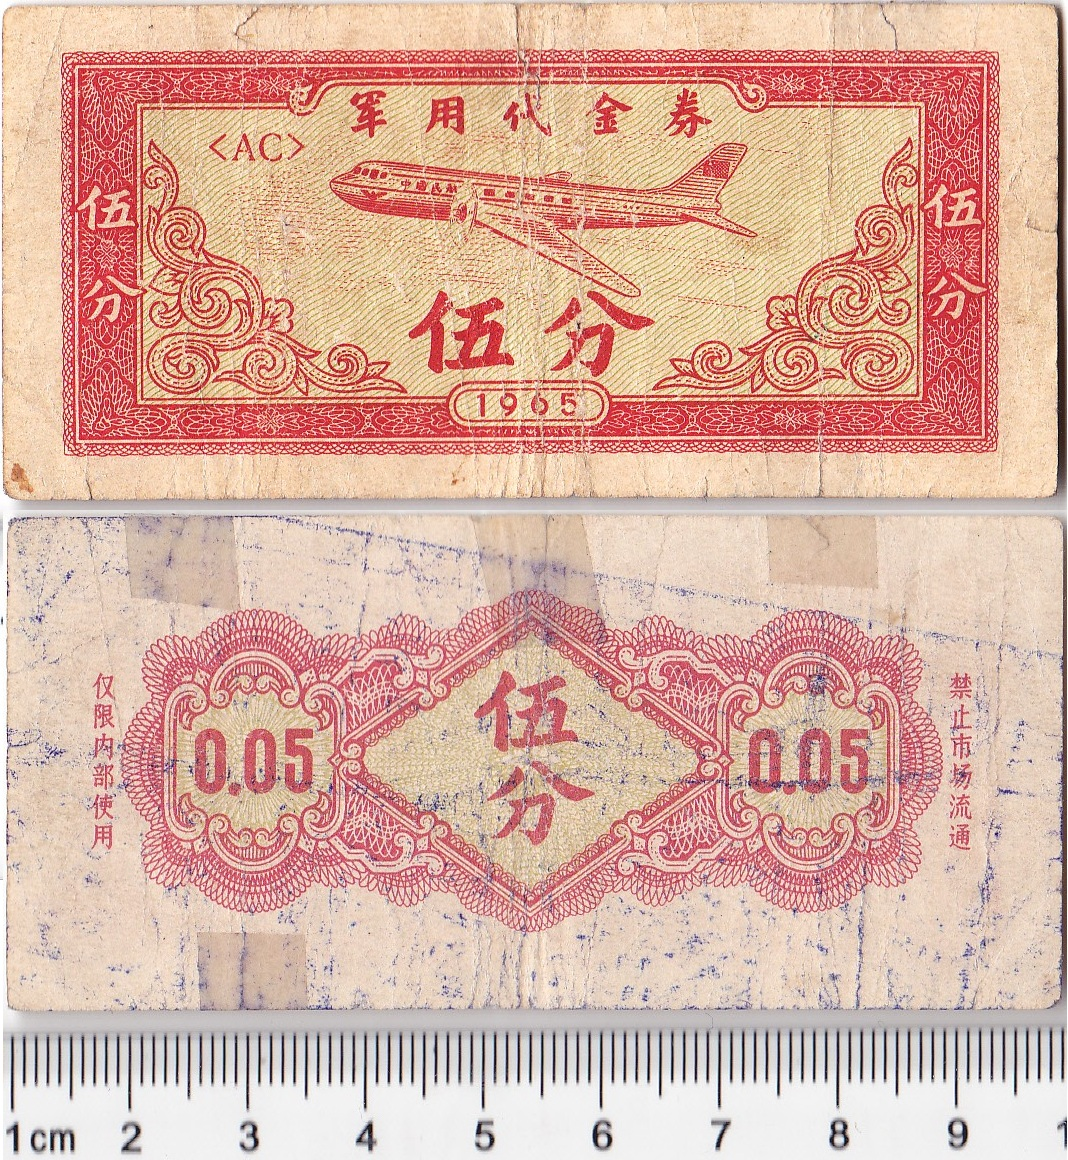 H0013, China Military Banknote, 5 Cent, during Vietnam War, 1965